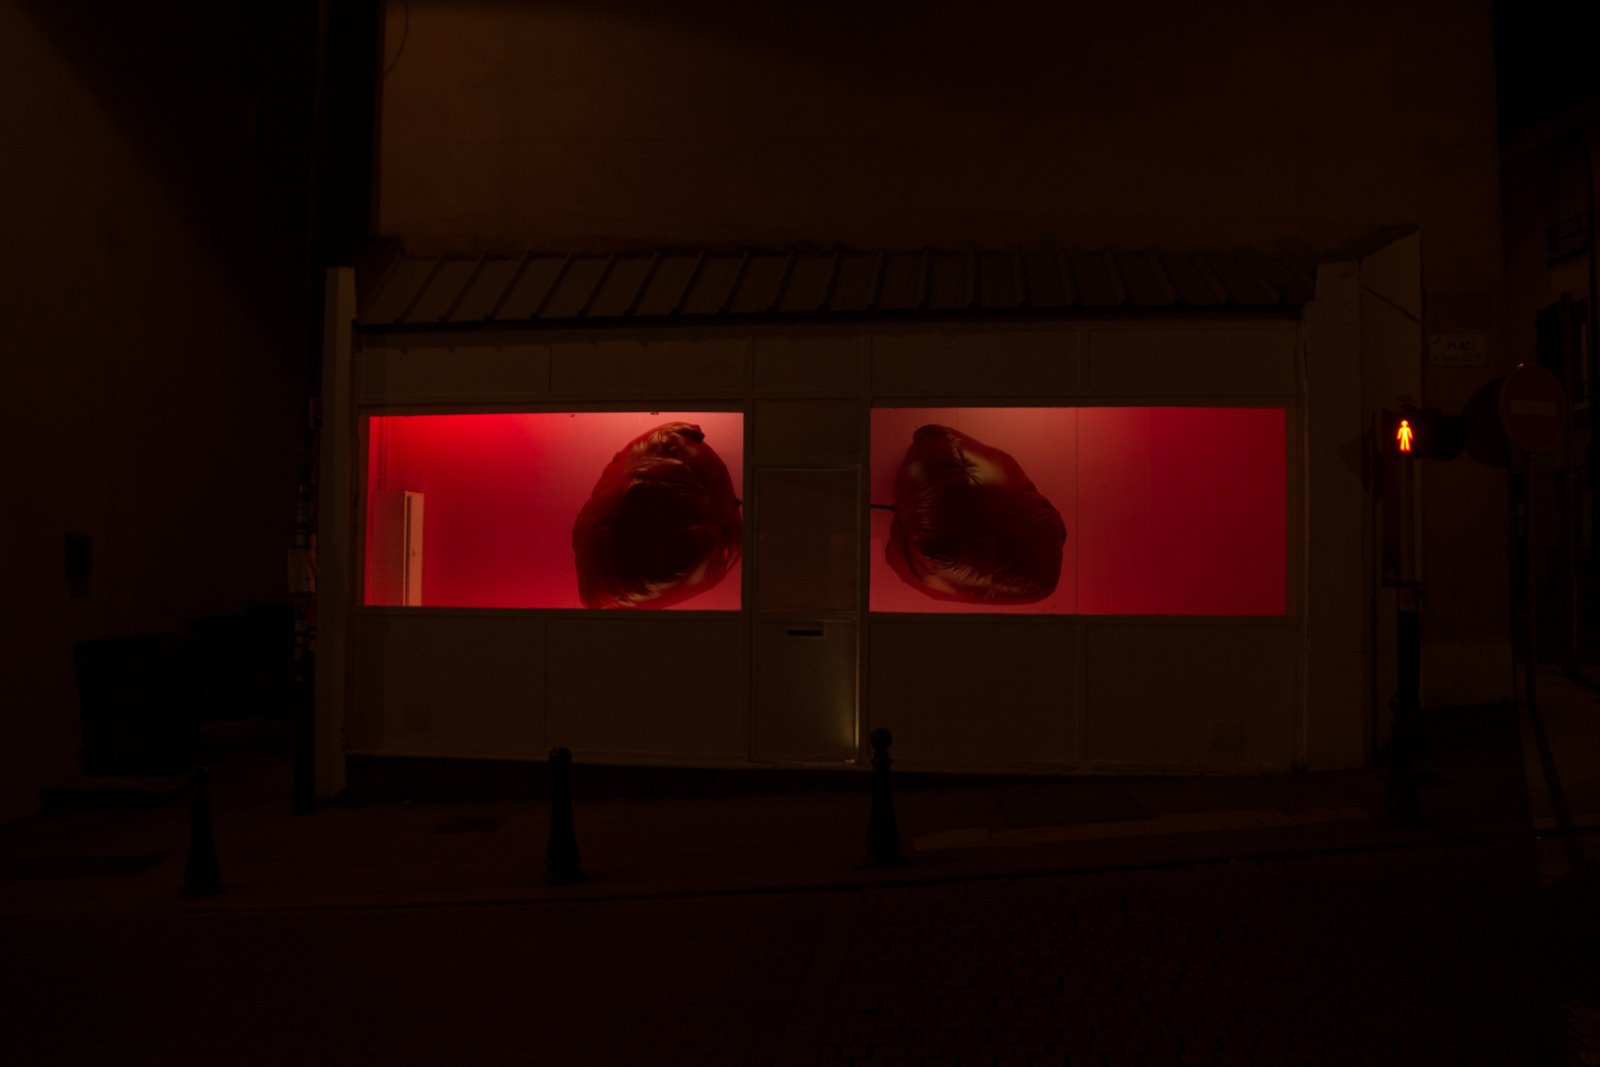 We Can't Breathe, 2015, Site specific Installation, 6m x 3m x 1 m, La Galeru, Fontenay-sous-bois, France.